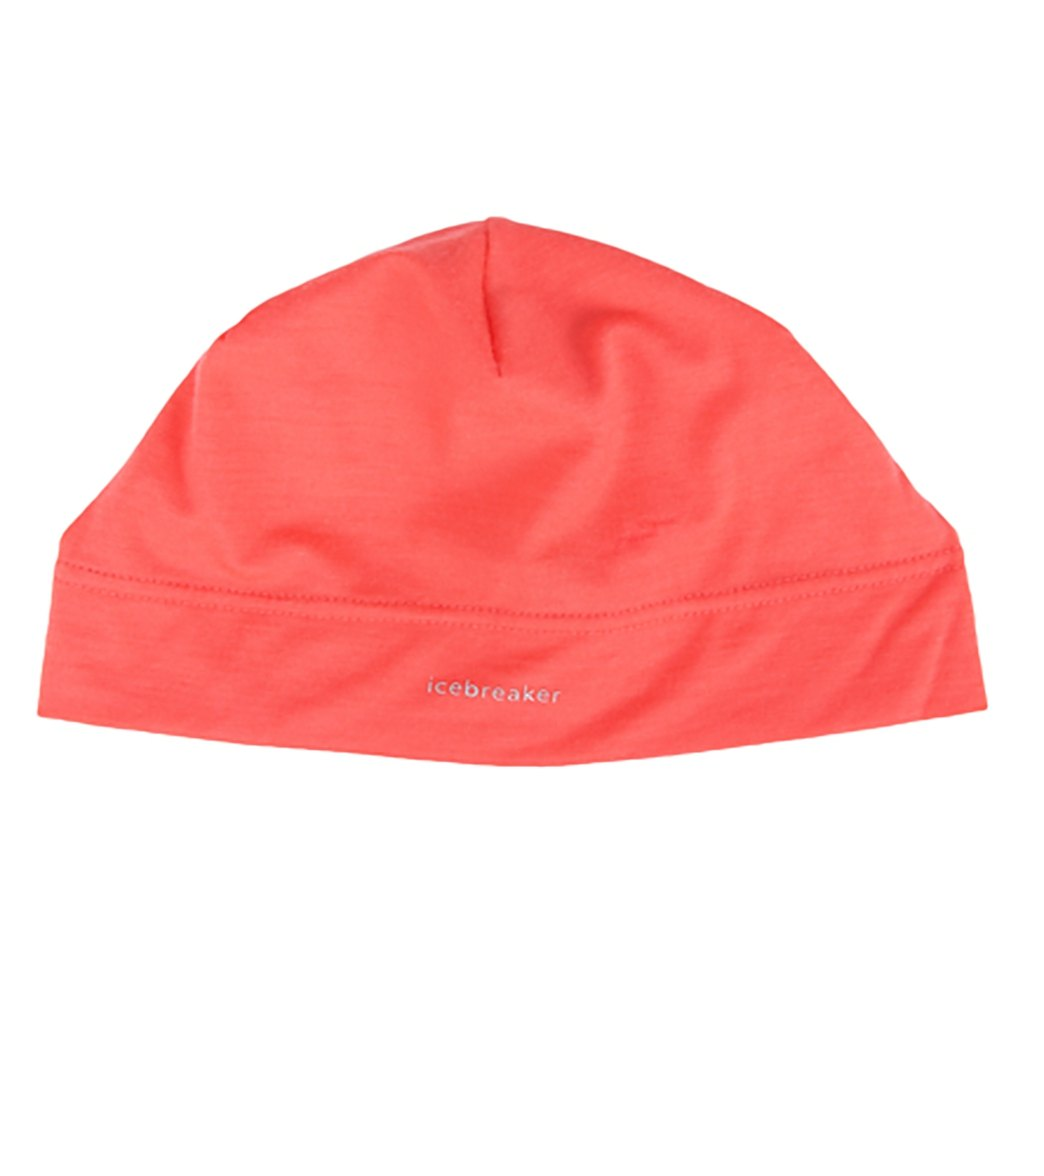 455bdd9877a Icebreaker Chase Beanie at SwimOutlet.com